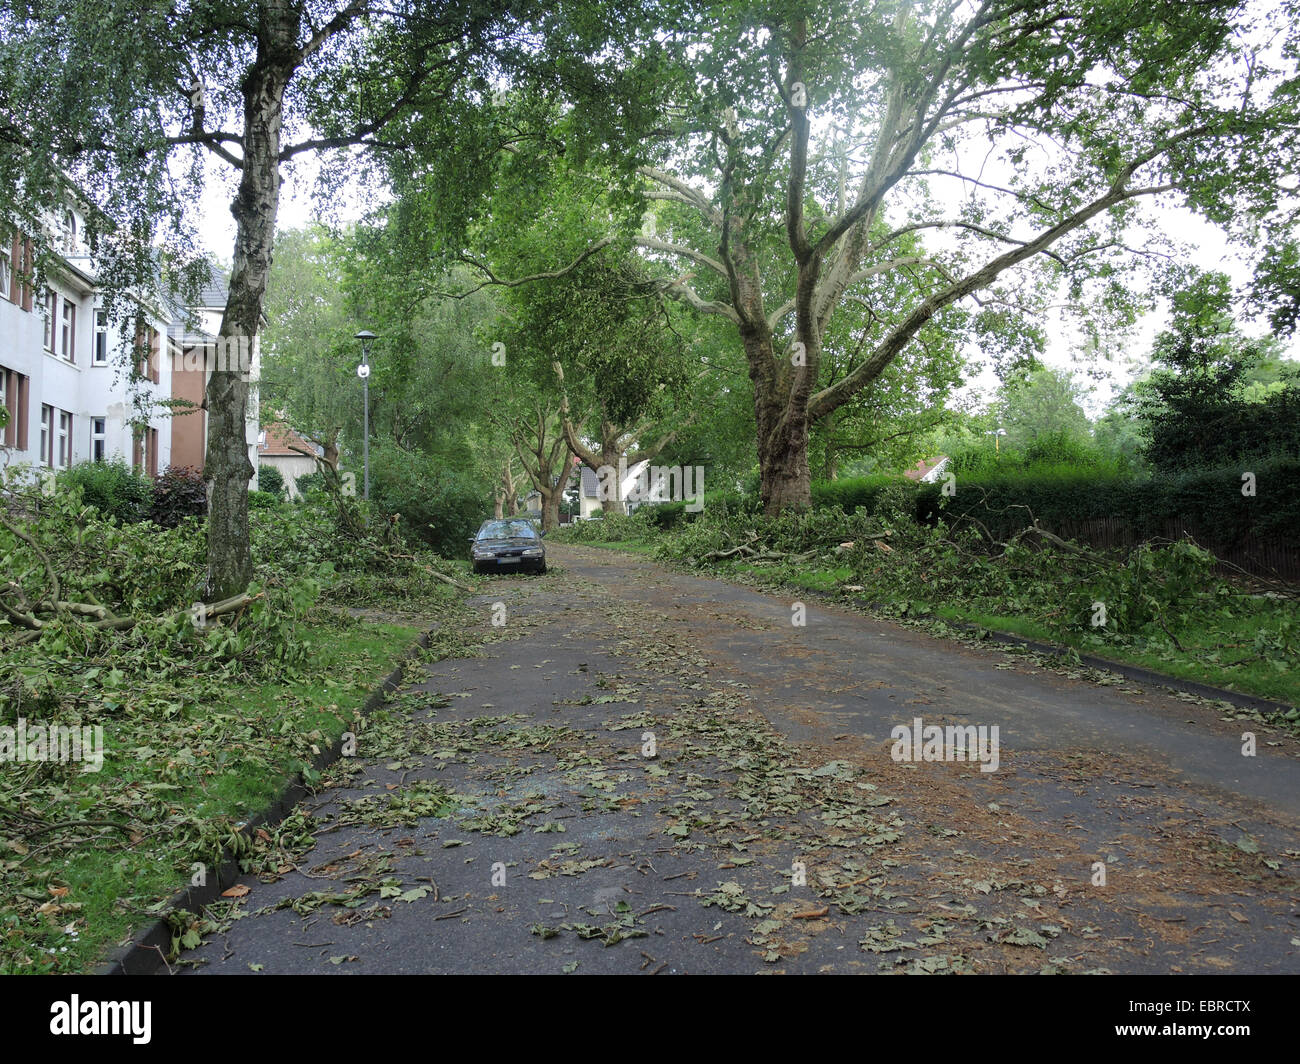 street with car after storm front Ela at 2014-06-09, Germany, North Rhine-Westphalia, Ruhr Area, Bochum - Stock Image